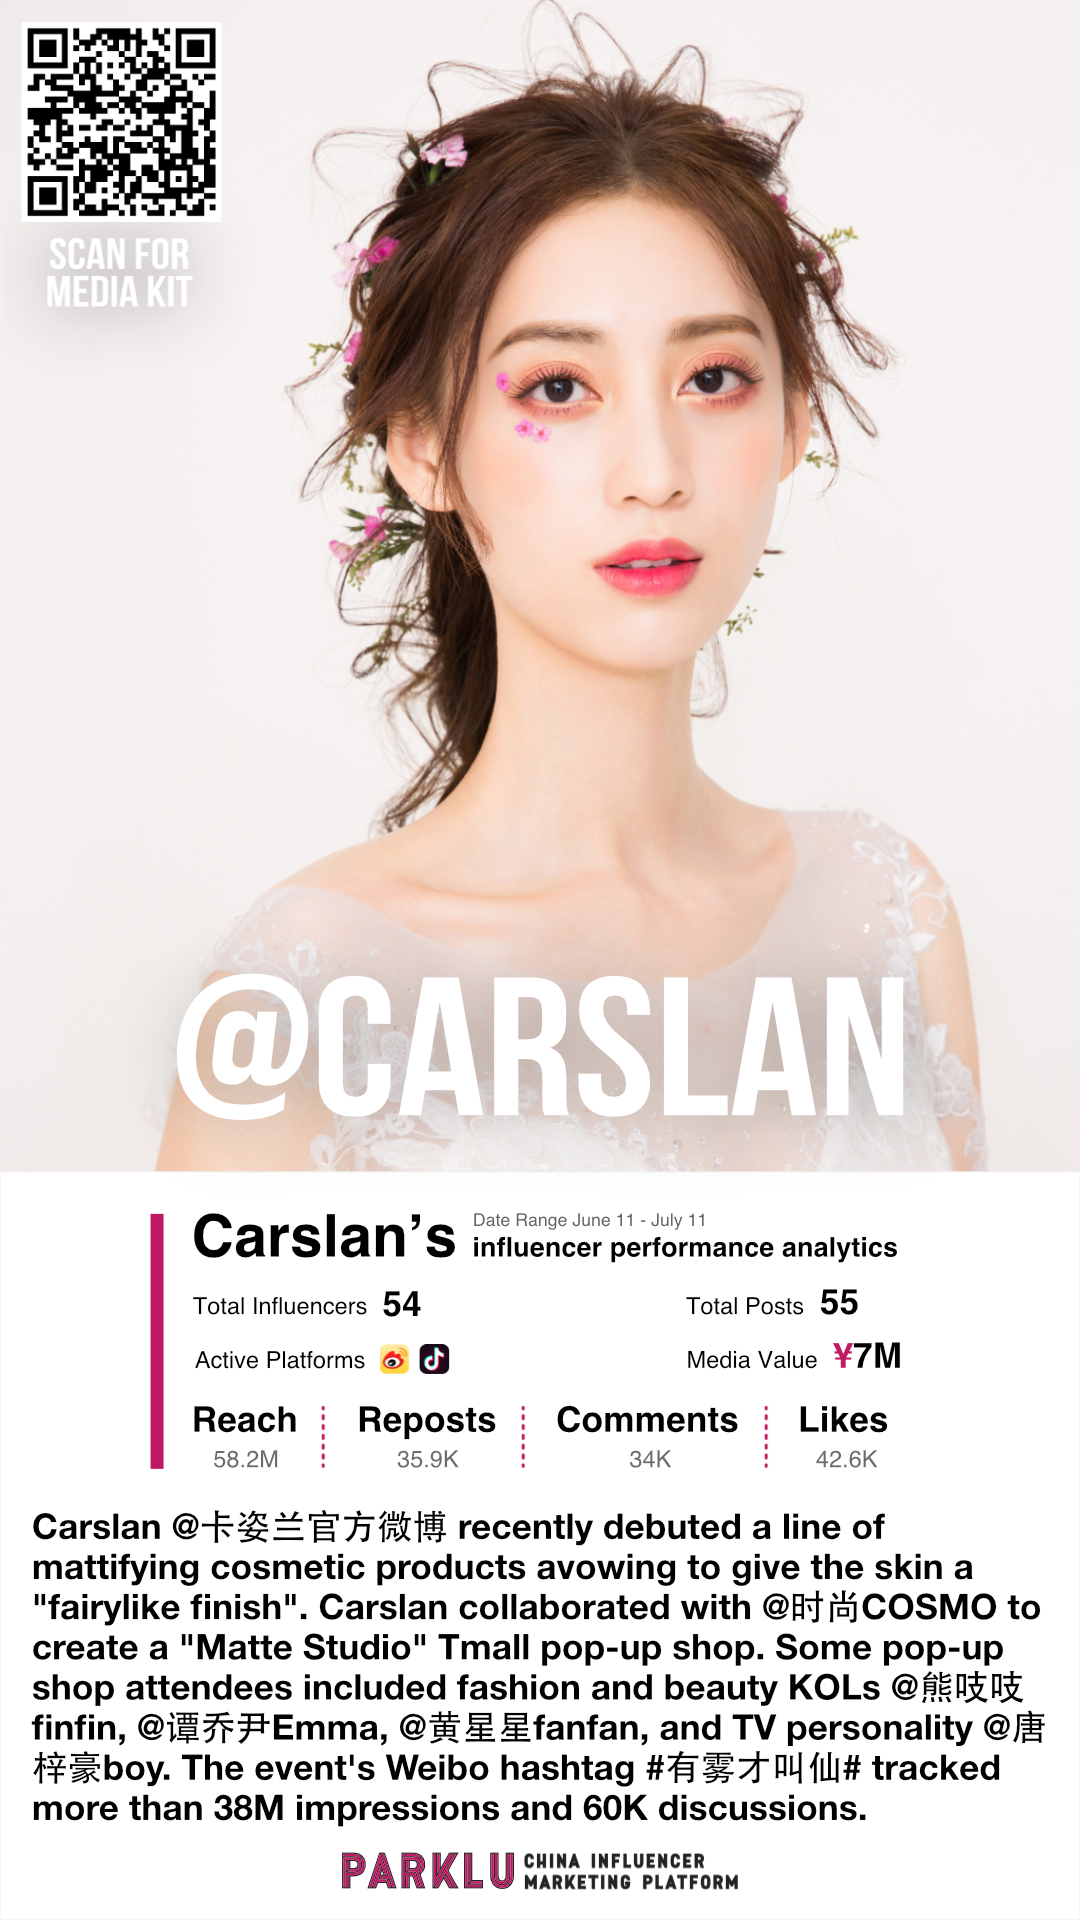 Carslan (卡姿兰) Debuted Mattifying Cosmetics with Beauty KOLs